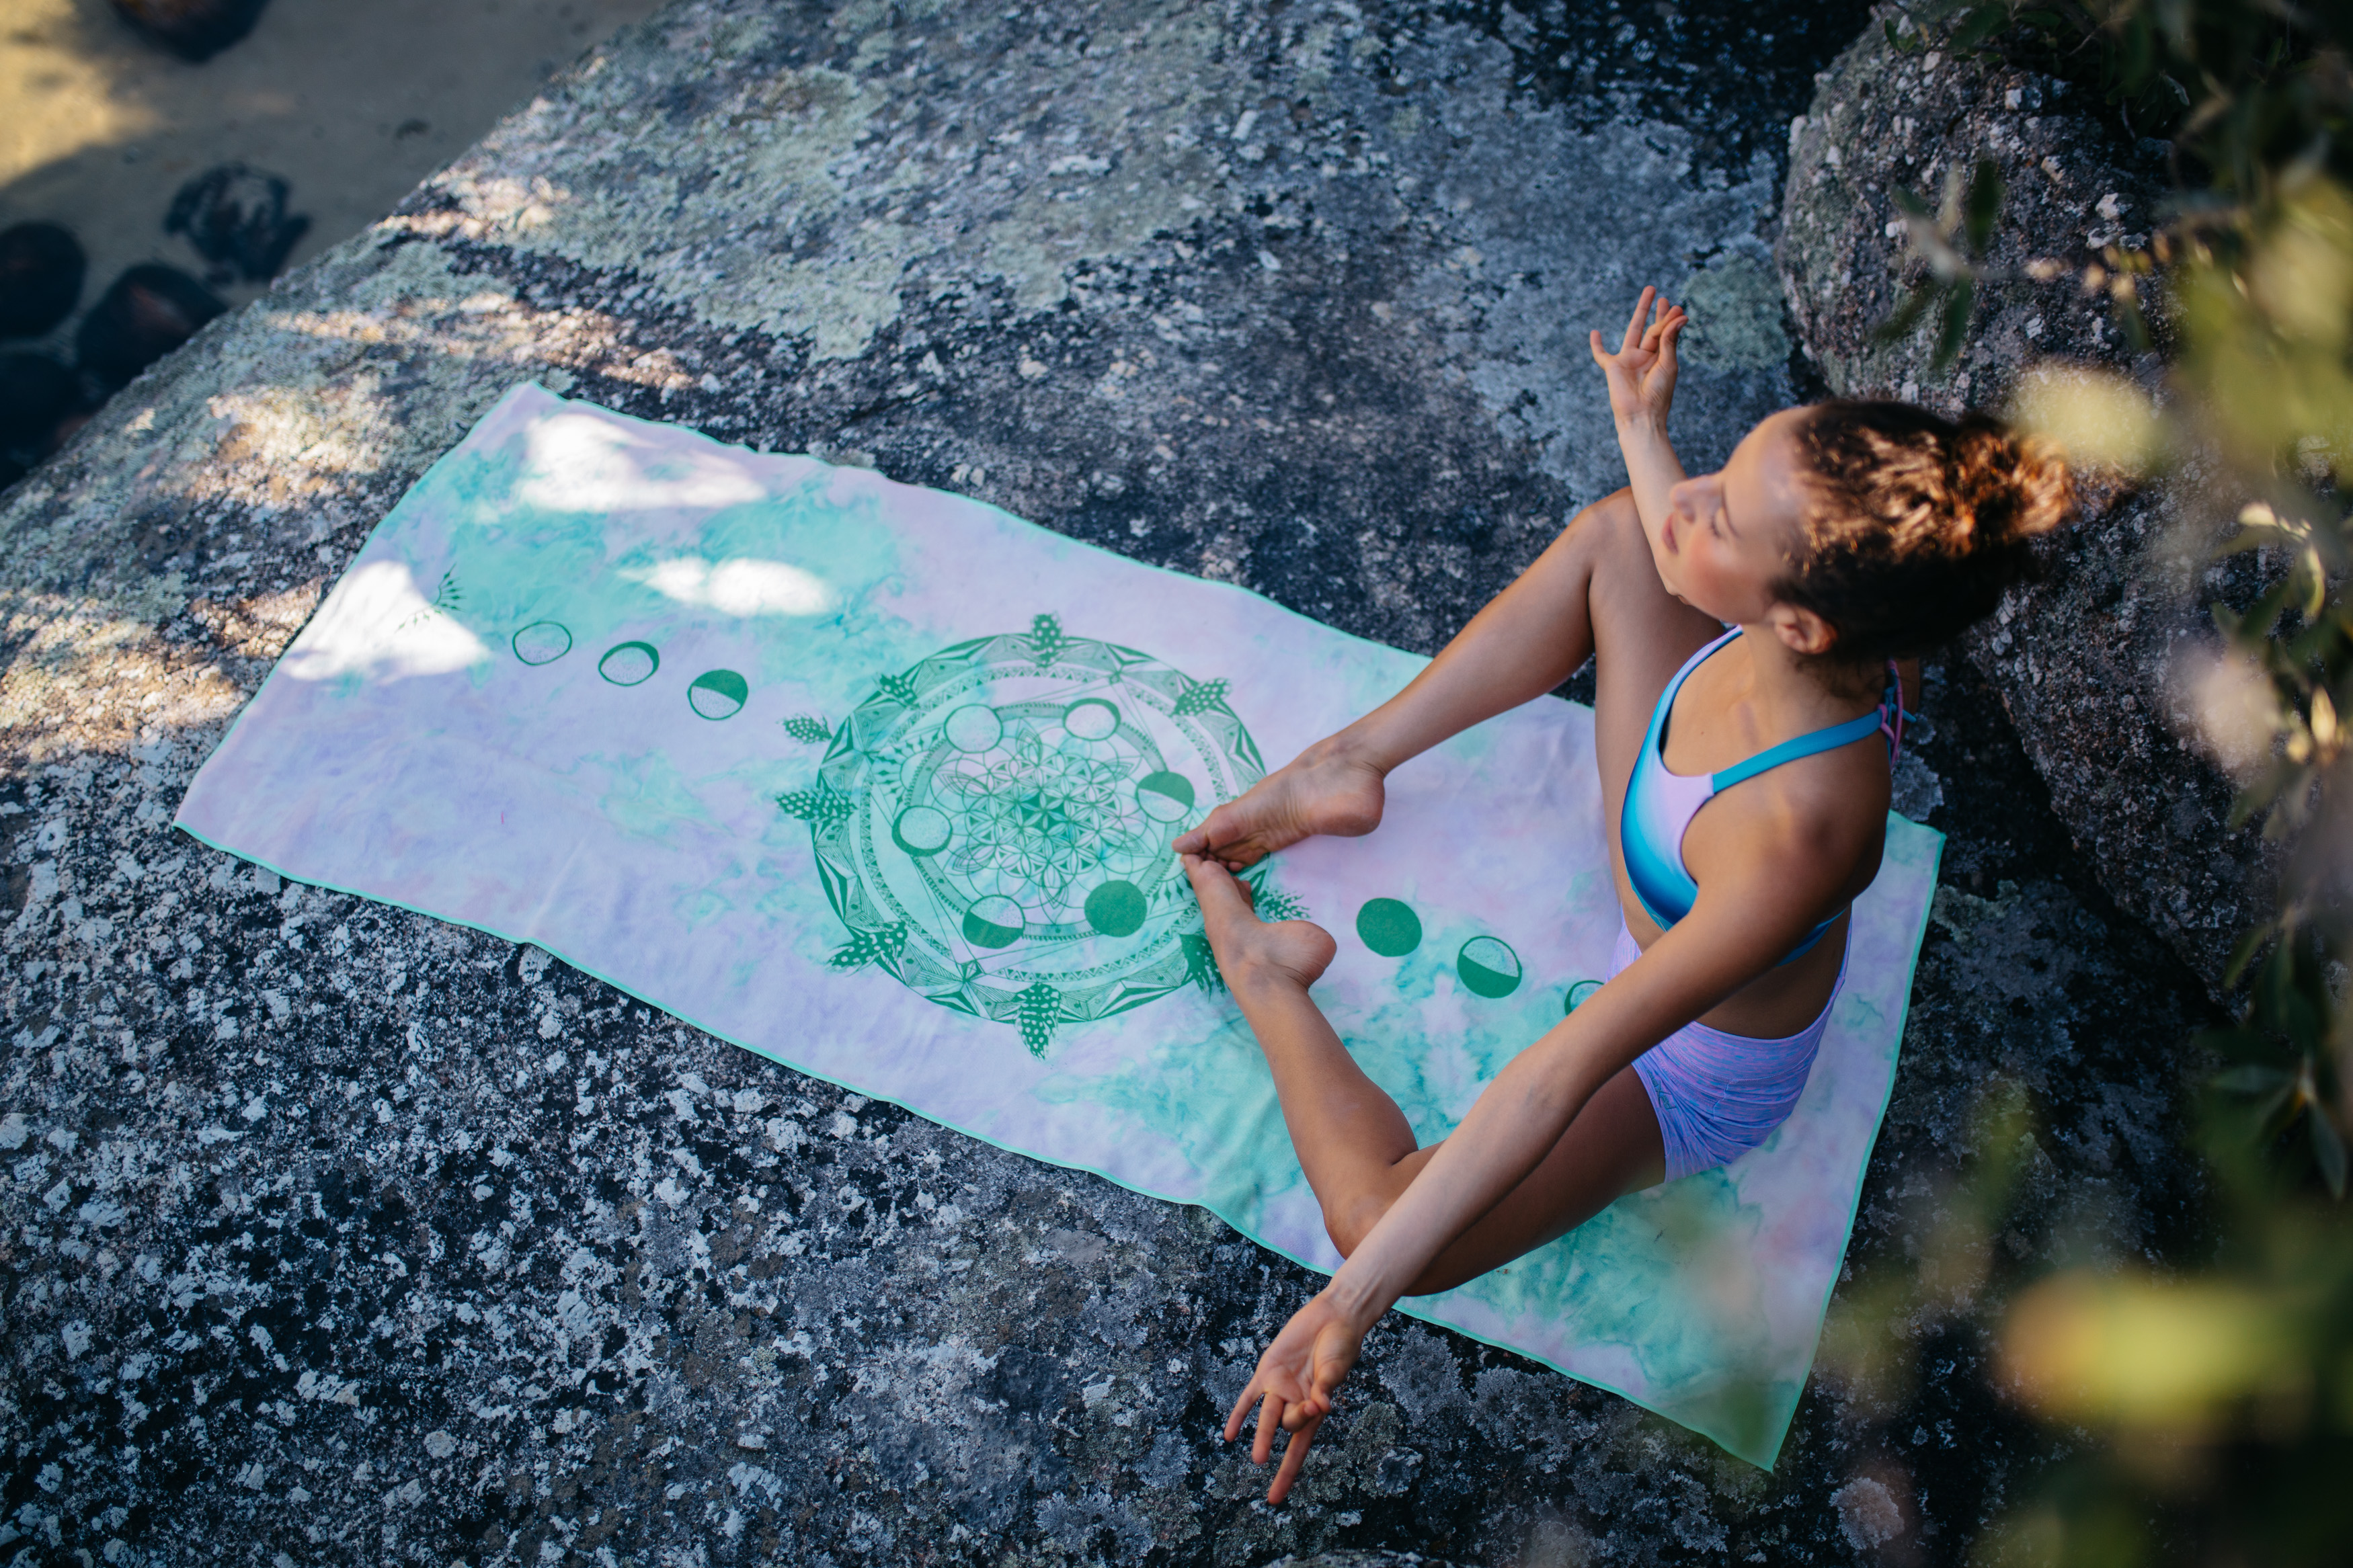 Moon Cycle Mandala Yoga/ Travel / Beach Towel | Batikarma Limited Edition Towels from Recycled Plastic